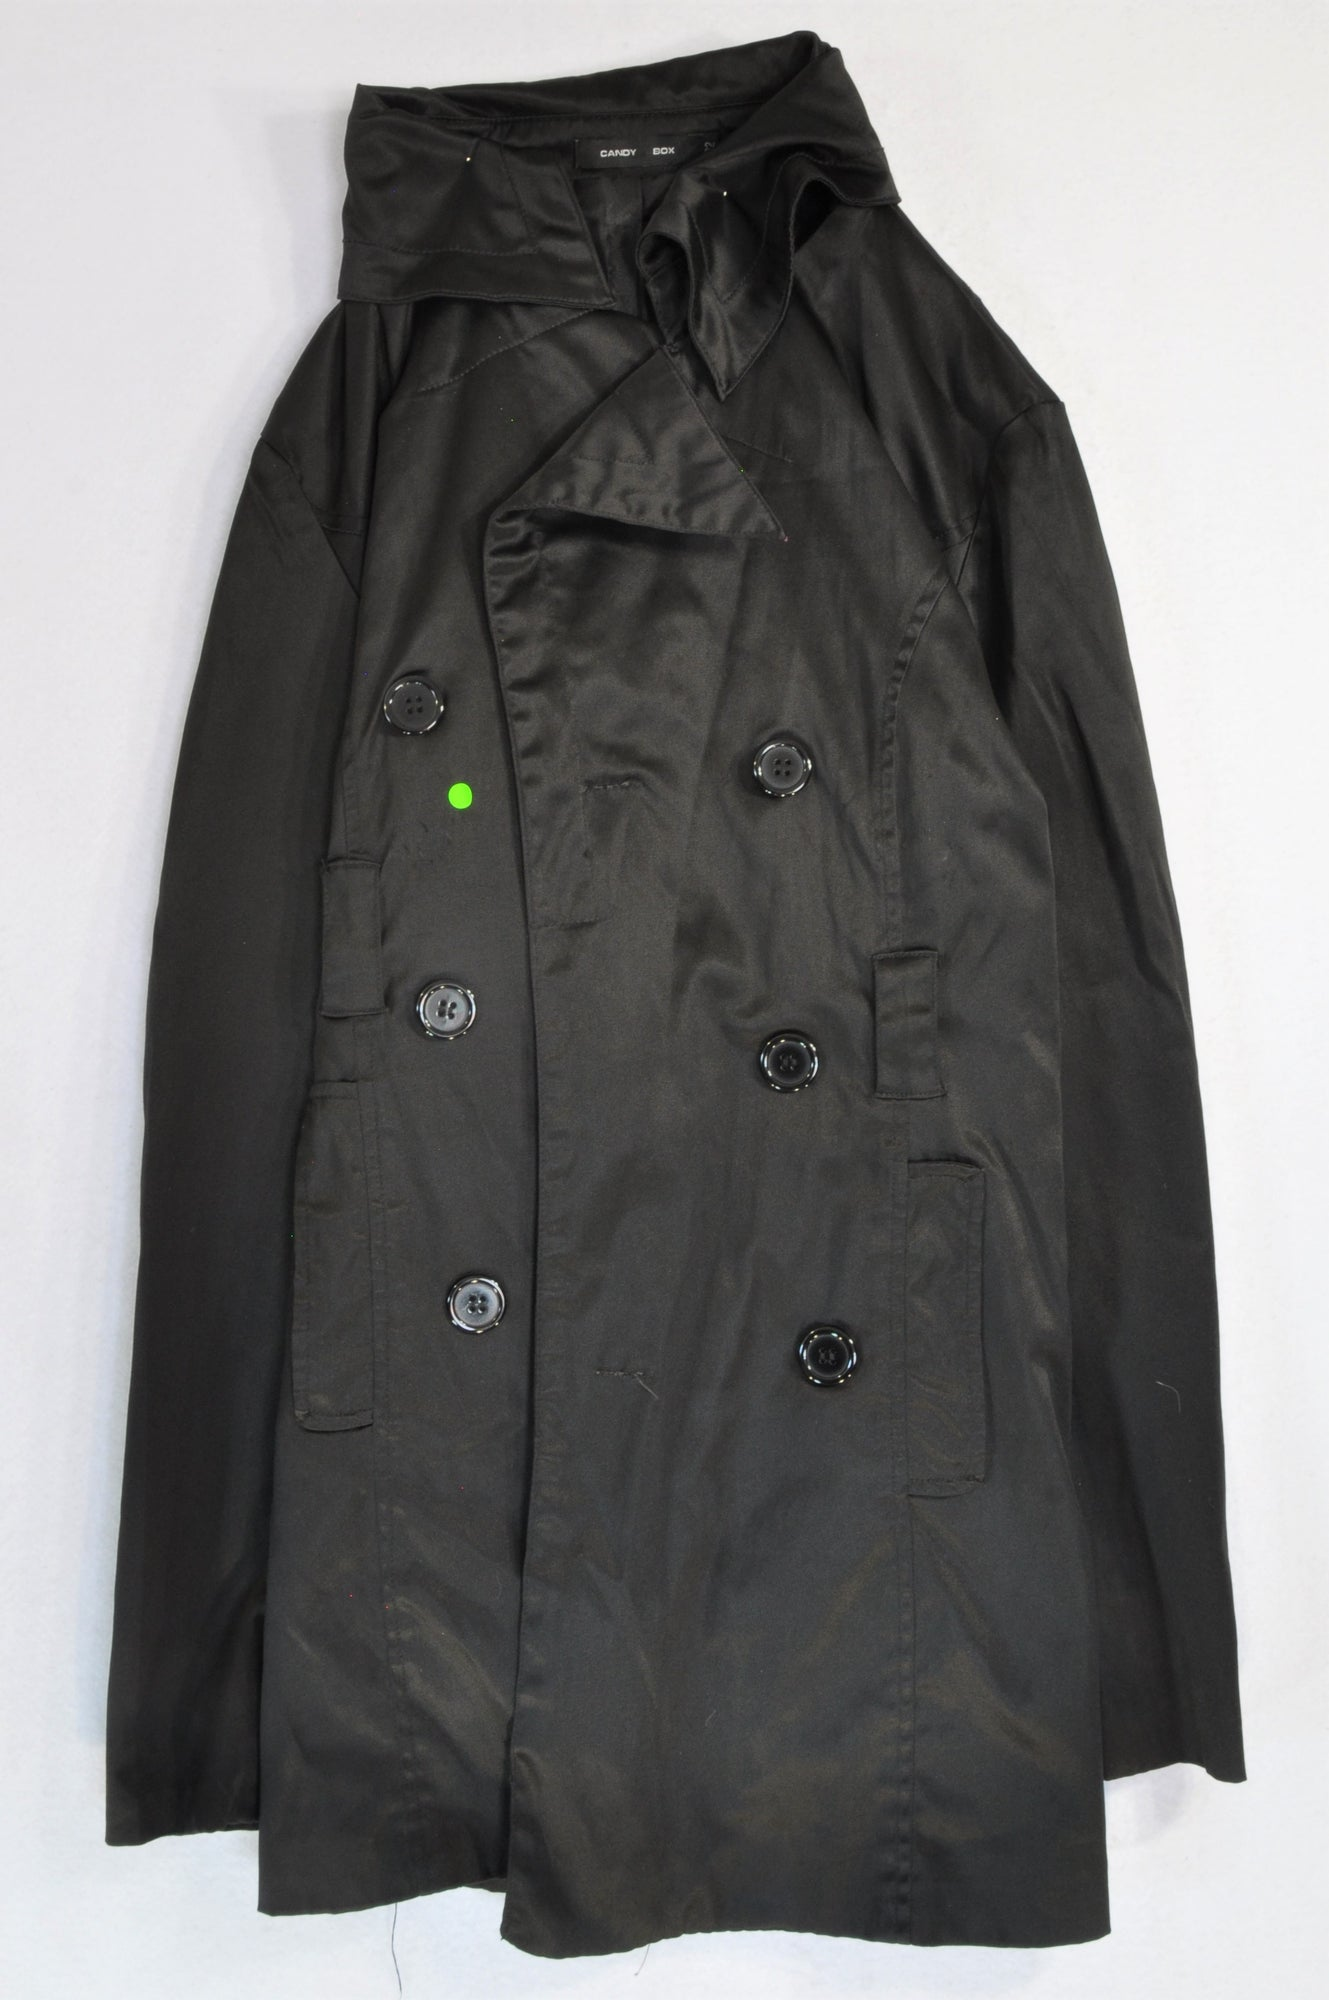 Candy Coat Black Sateen Button Lightweight Coat Women Size 34